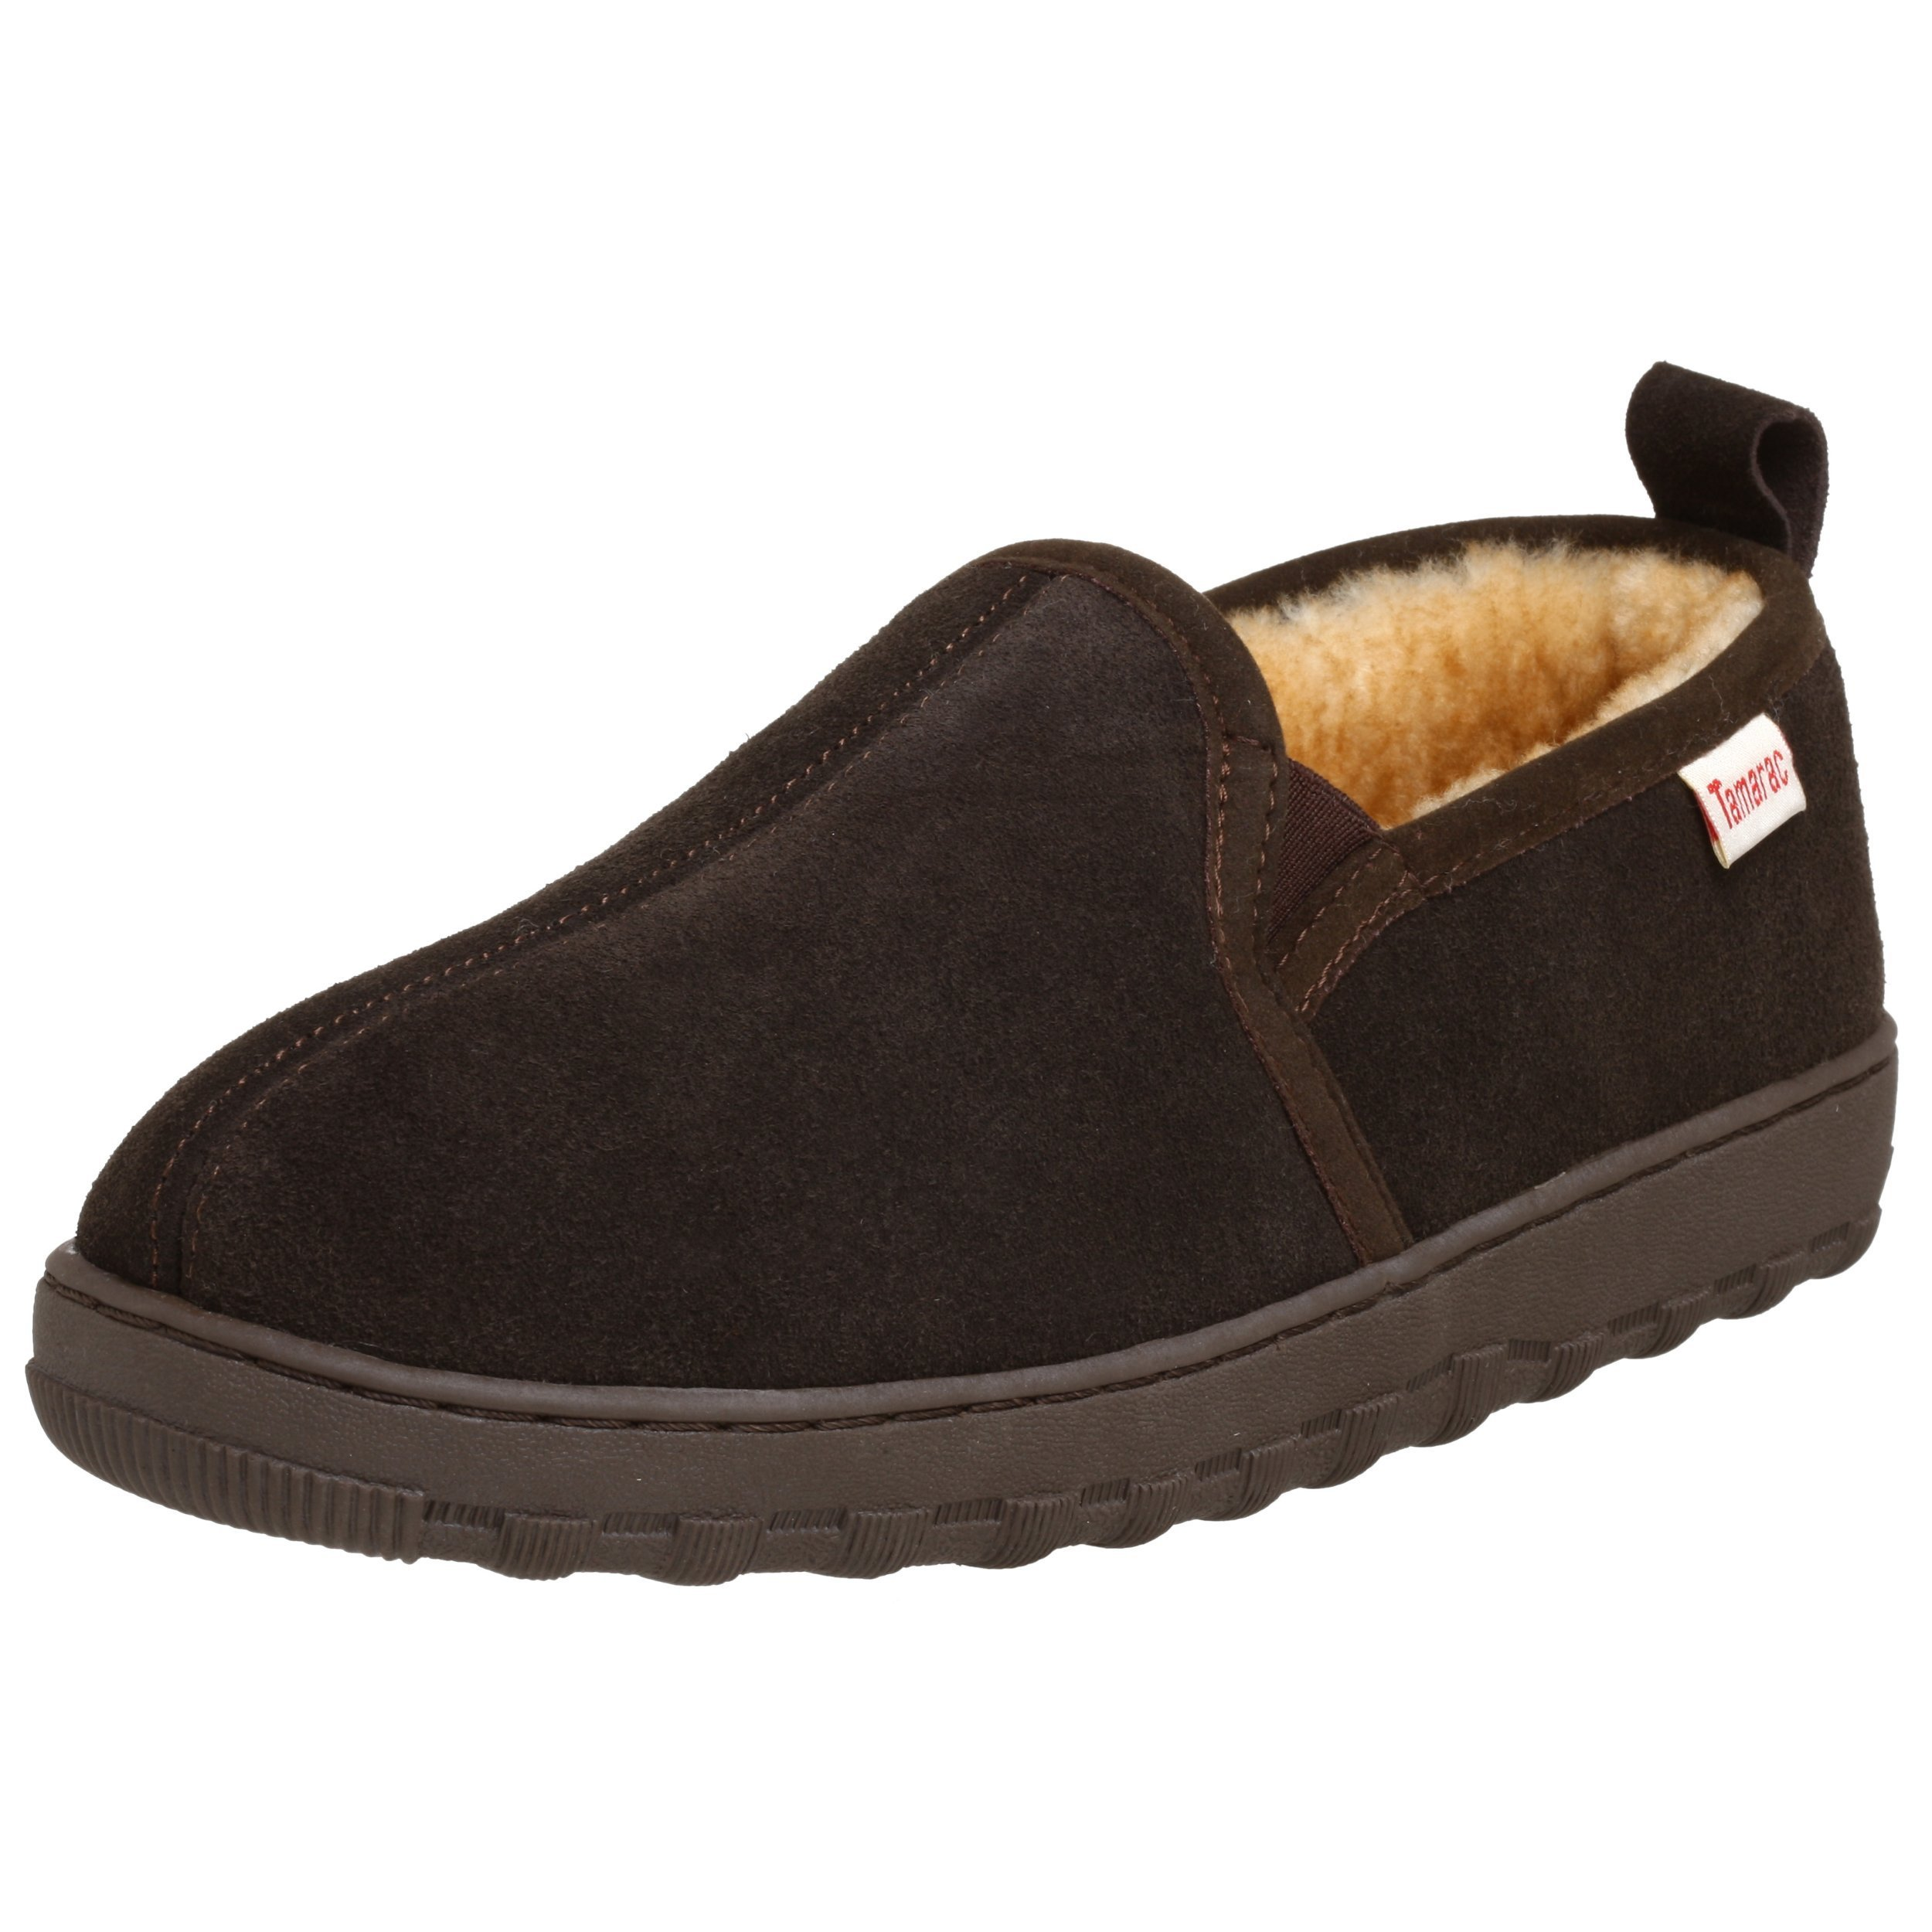 Tamarac by Slippers International Men's Cody Sheepskin Slipper,Rootbeer,9 M US